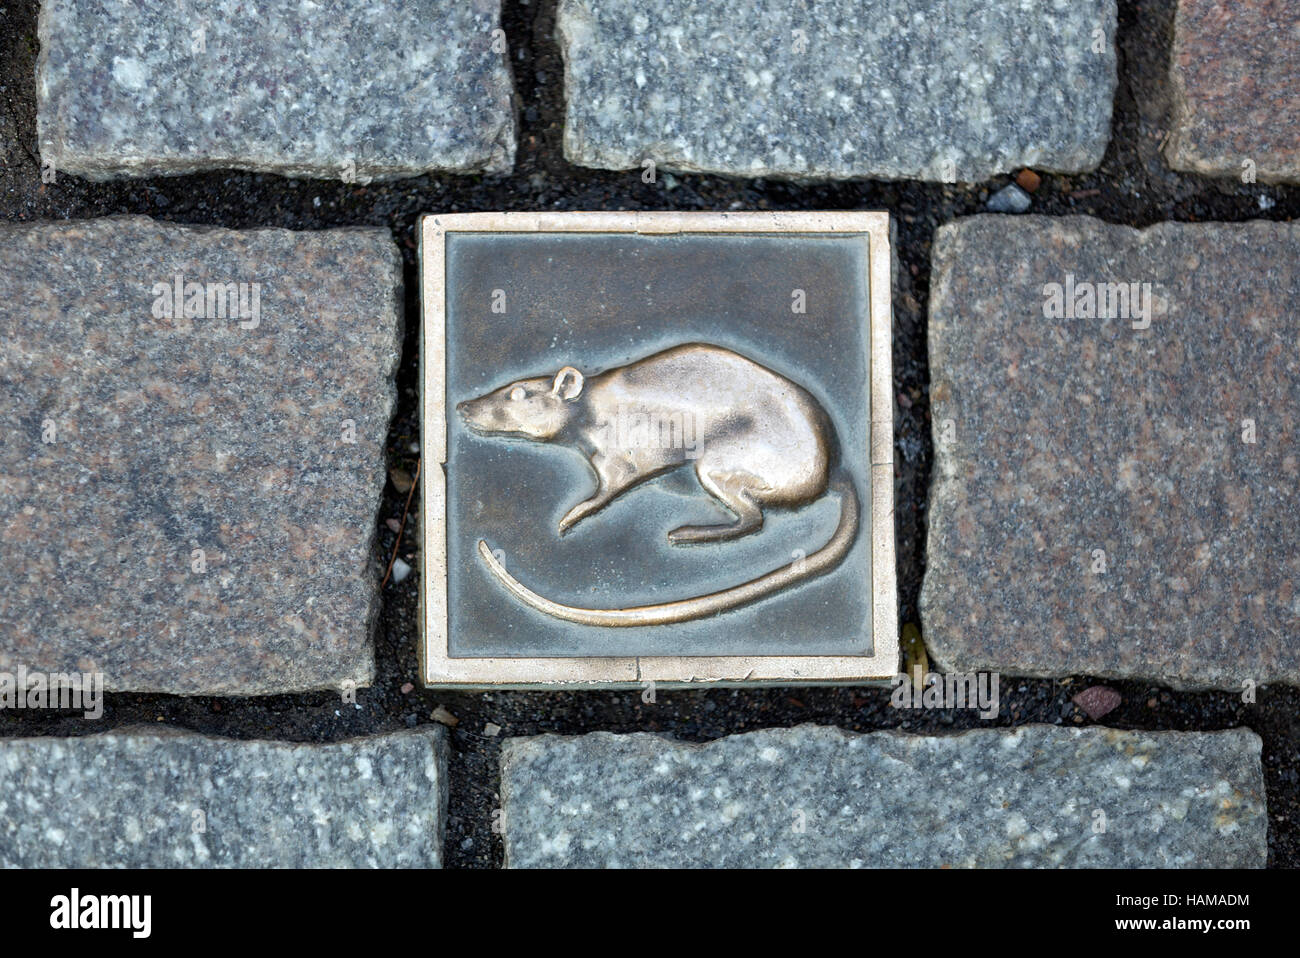 Paving tile with rat, rat catcher route, marking old city tour, historic centre, Hameln, Lower Saxony, Germany - Stock Image